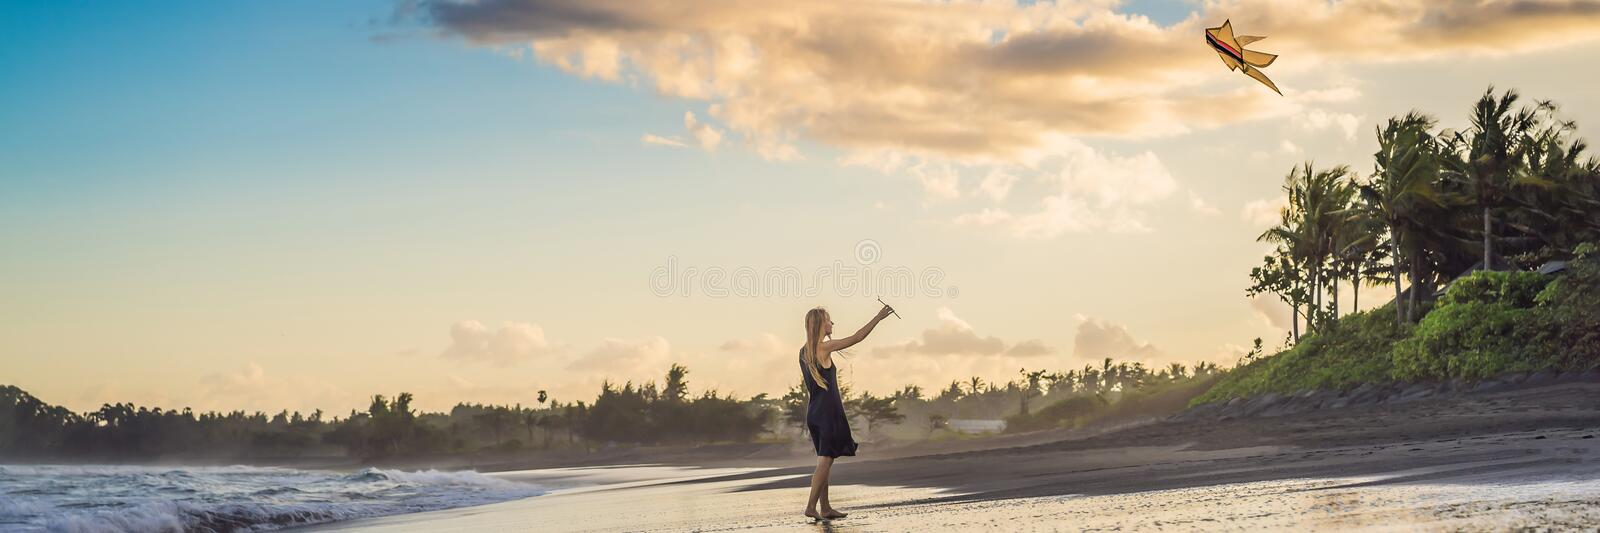 A young woman launches a kite on the beach. Dream, aspirations, future plans BANNER, LONG FORMAT. A young woman launches a kite on the beach. Dream, aspirations stock image